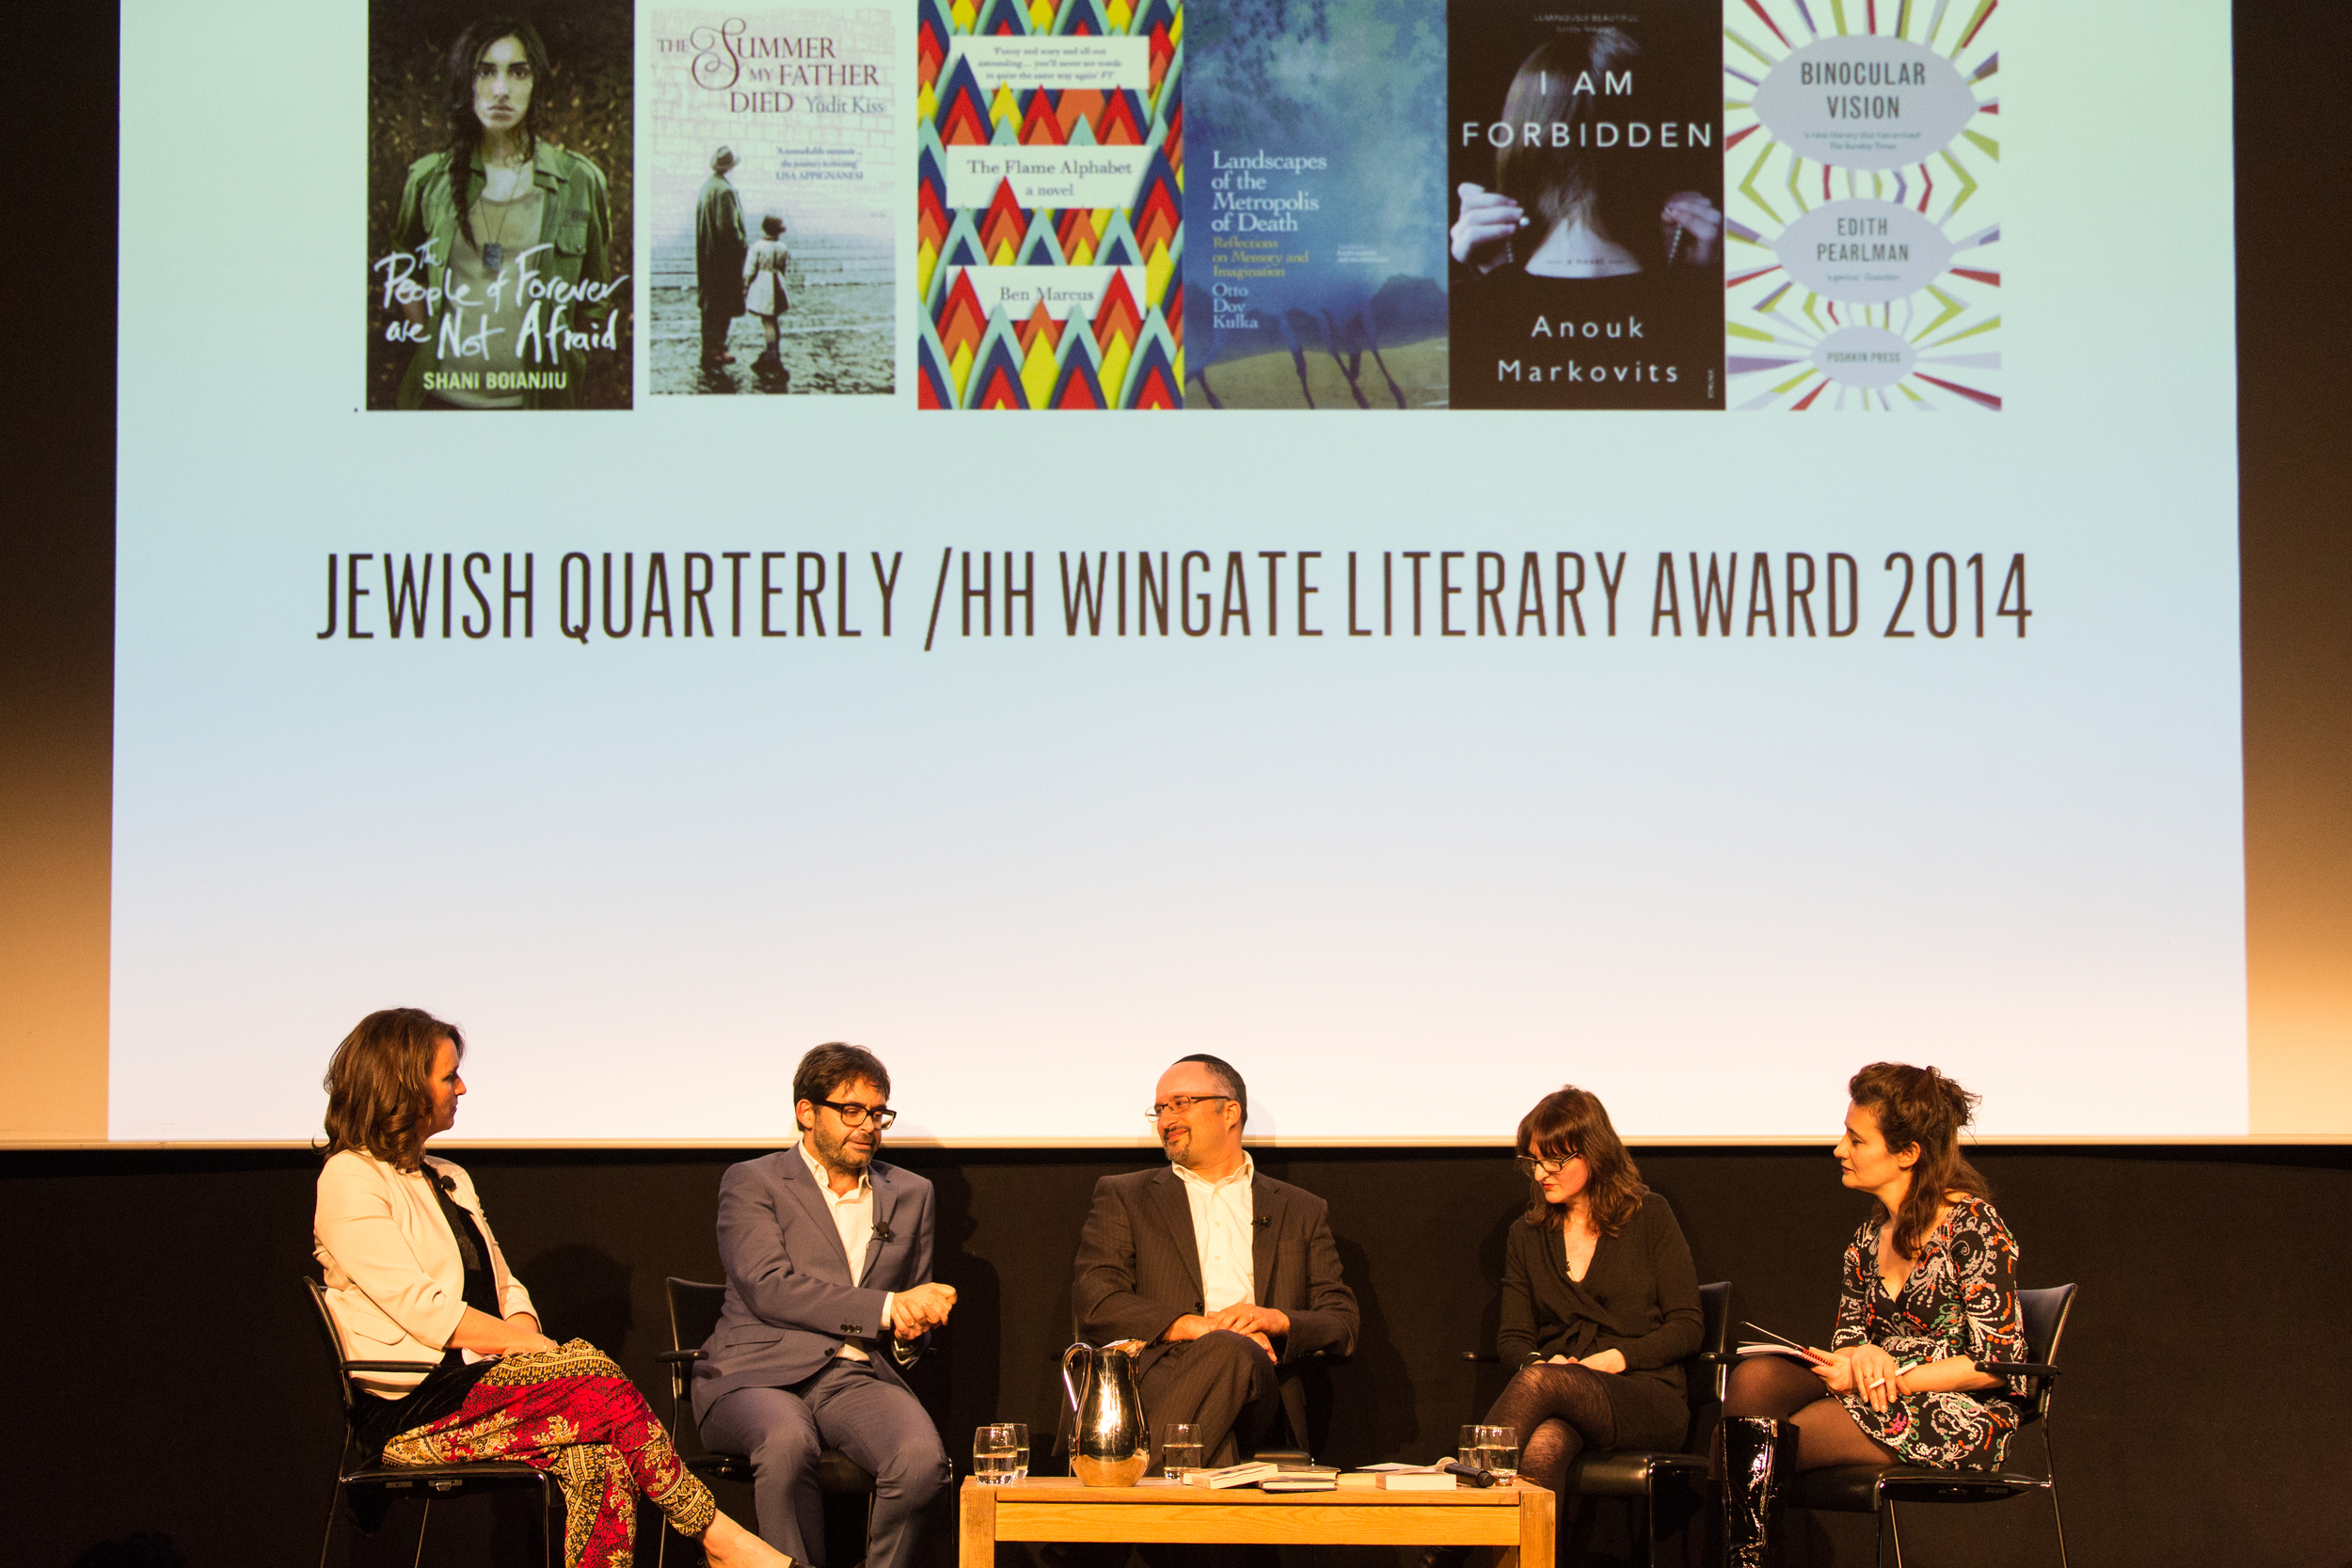 JBW - Weds Eve -26.2.14 - The Jewish Quarterly Wingate Literary Prize 2014 - Andy Tyler Photography-3450.jpg